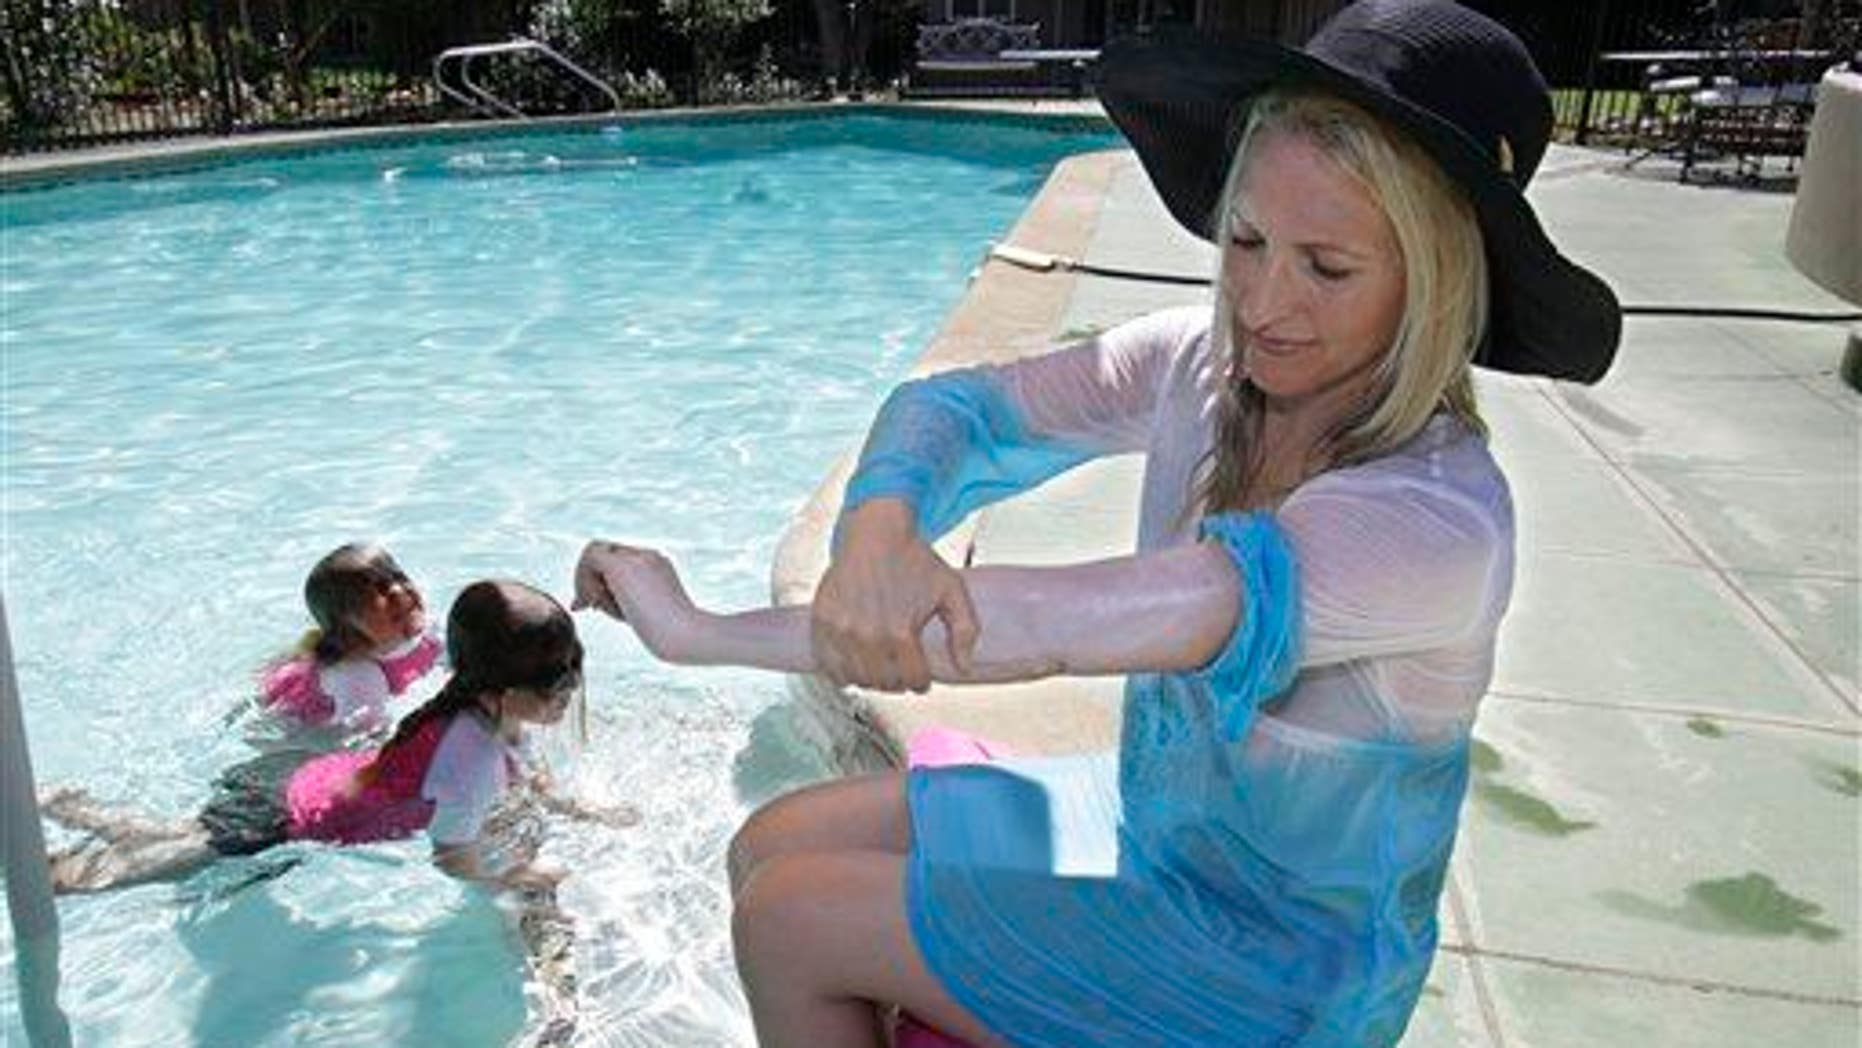 In this Wednesday, June, 22, 2011, photo,  a woman who was diagnosed with malignant melanoma at 35 puts on sun screen while poolside with her daughters at their home in Carmichael, Calif.